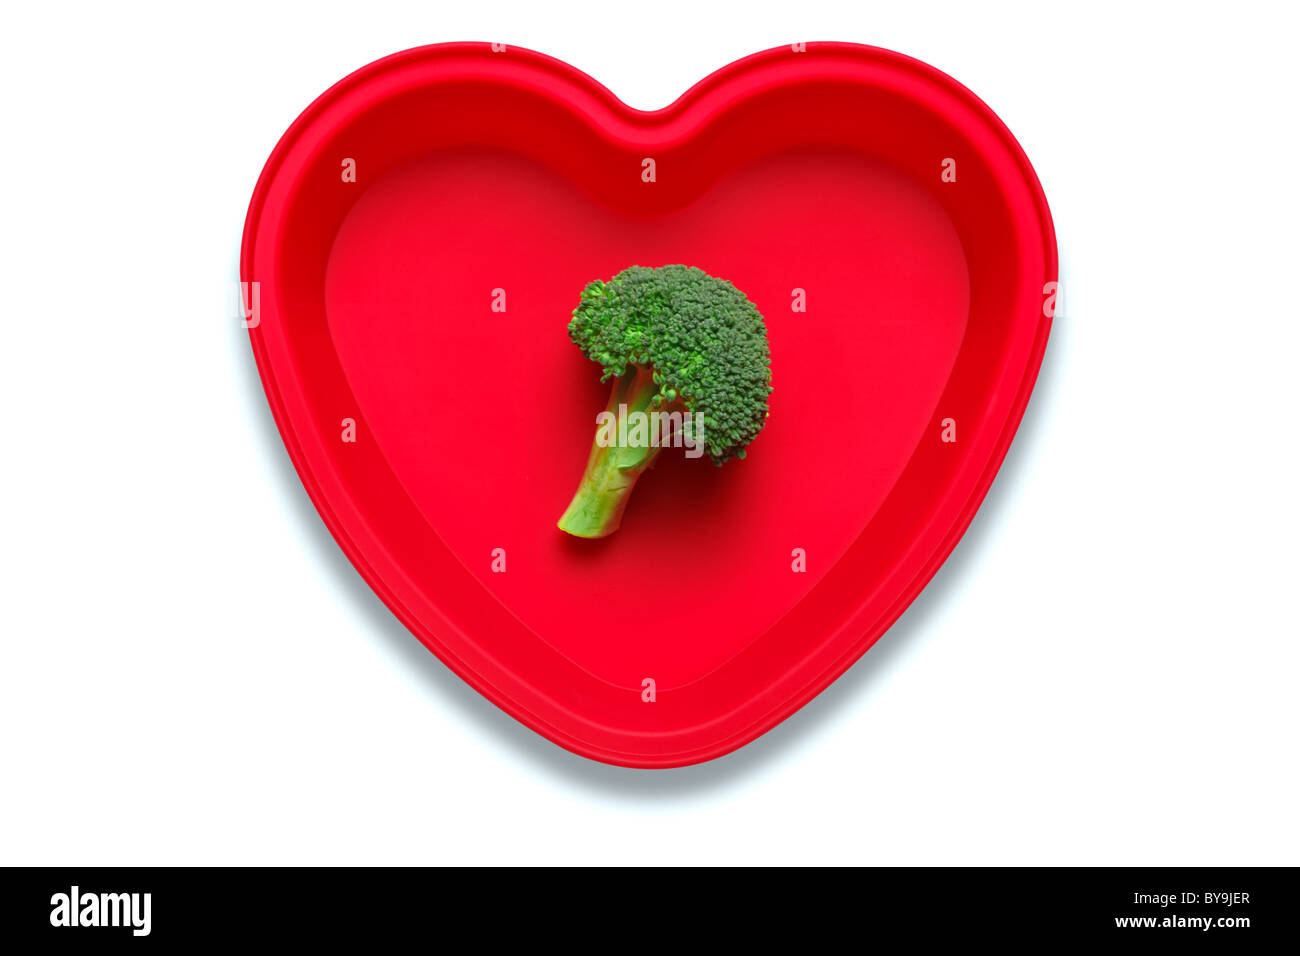 Conceptual photo of broccoli in a heart shaped dish to represent a love of the vegetable, isolated on a white background - Stock Image